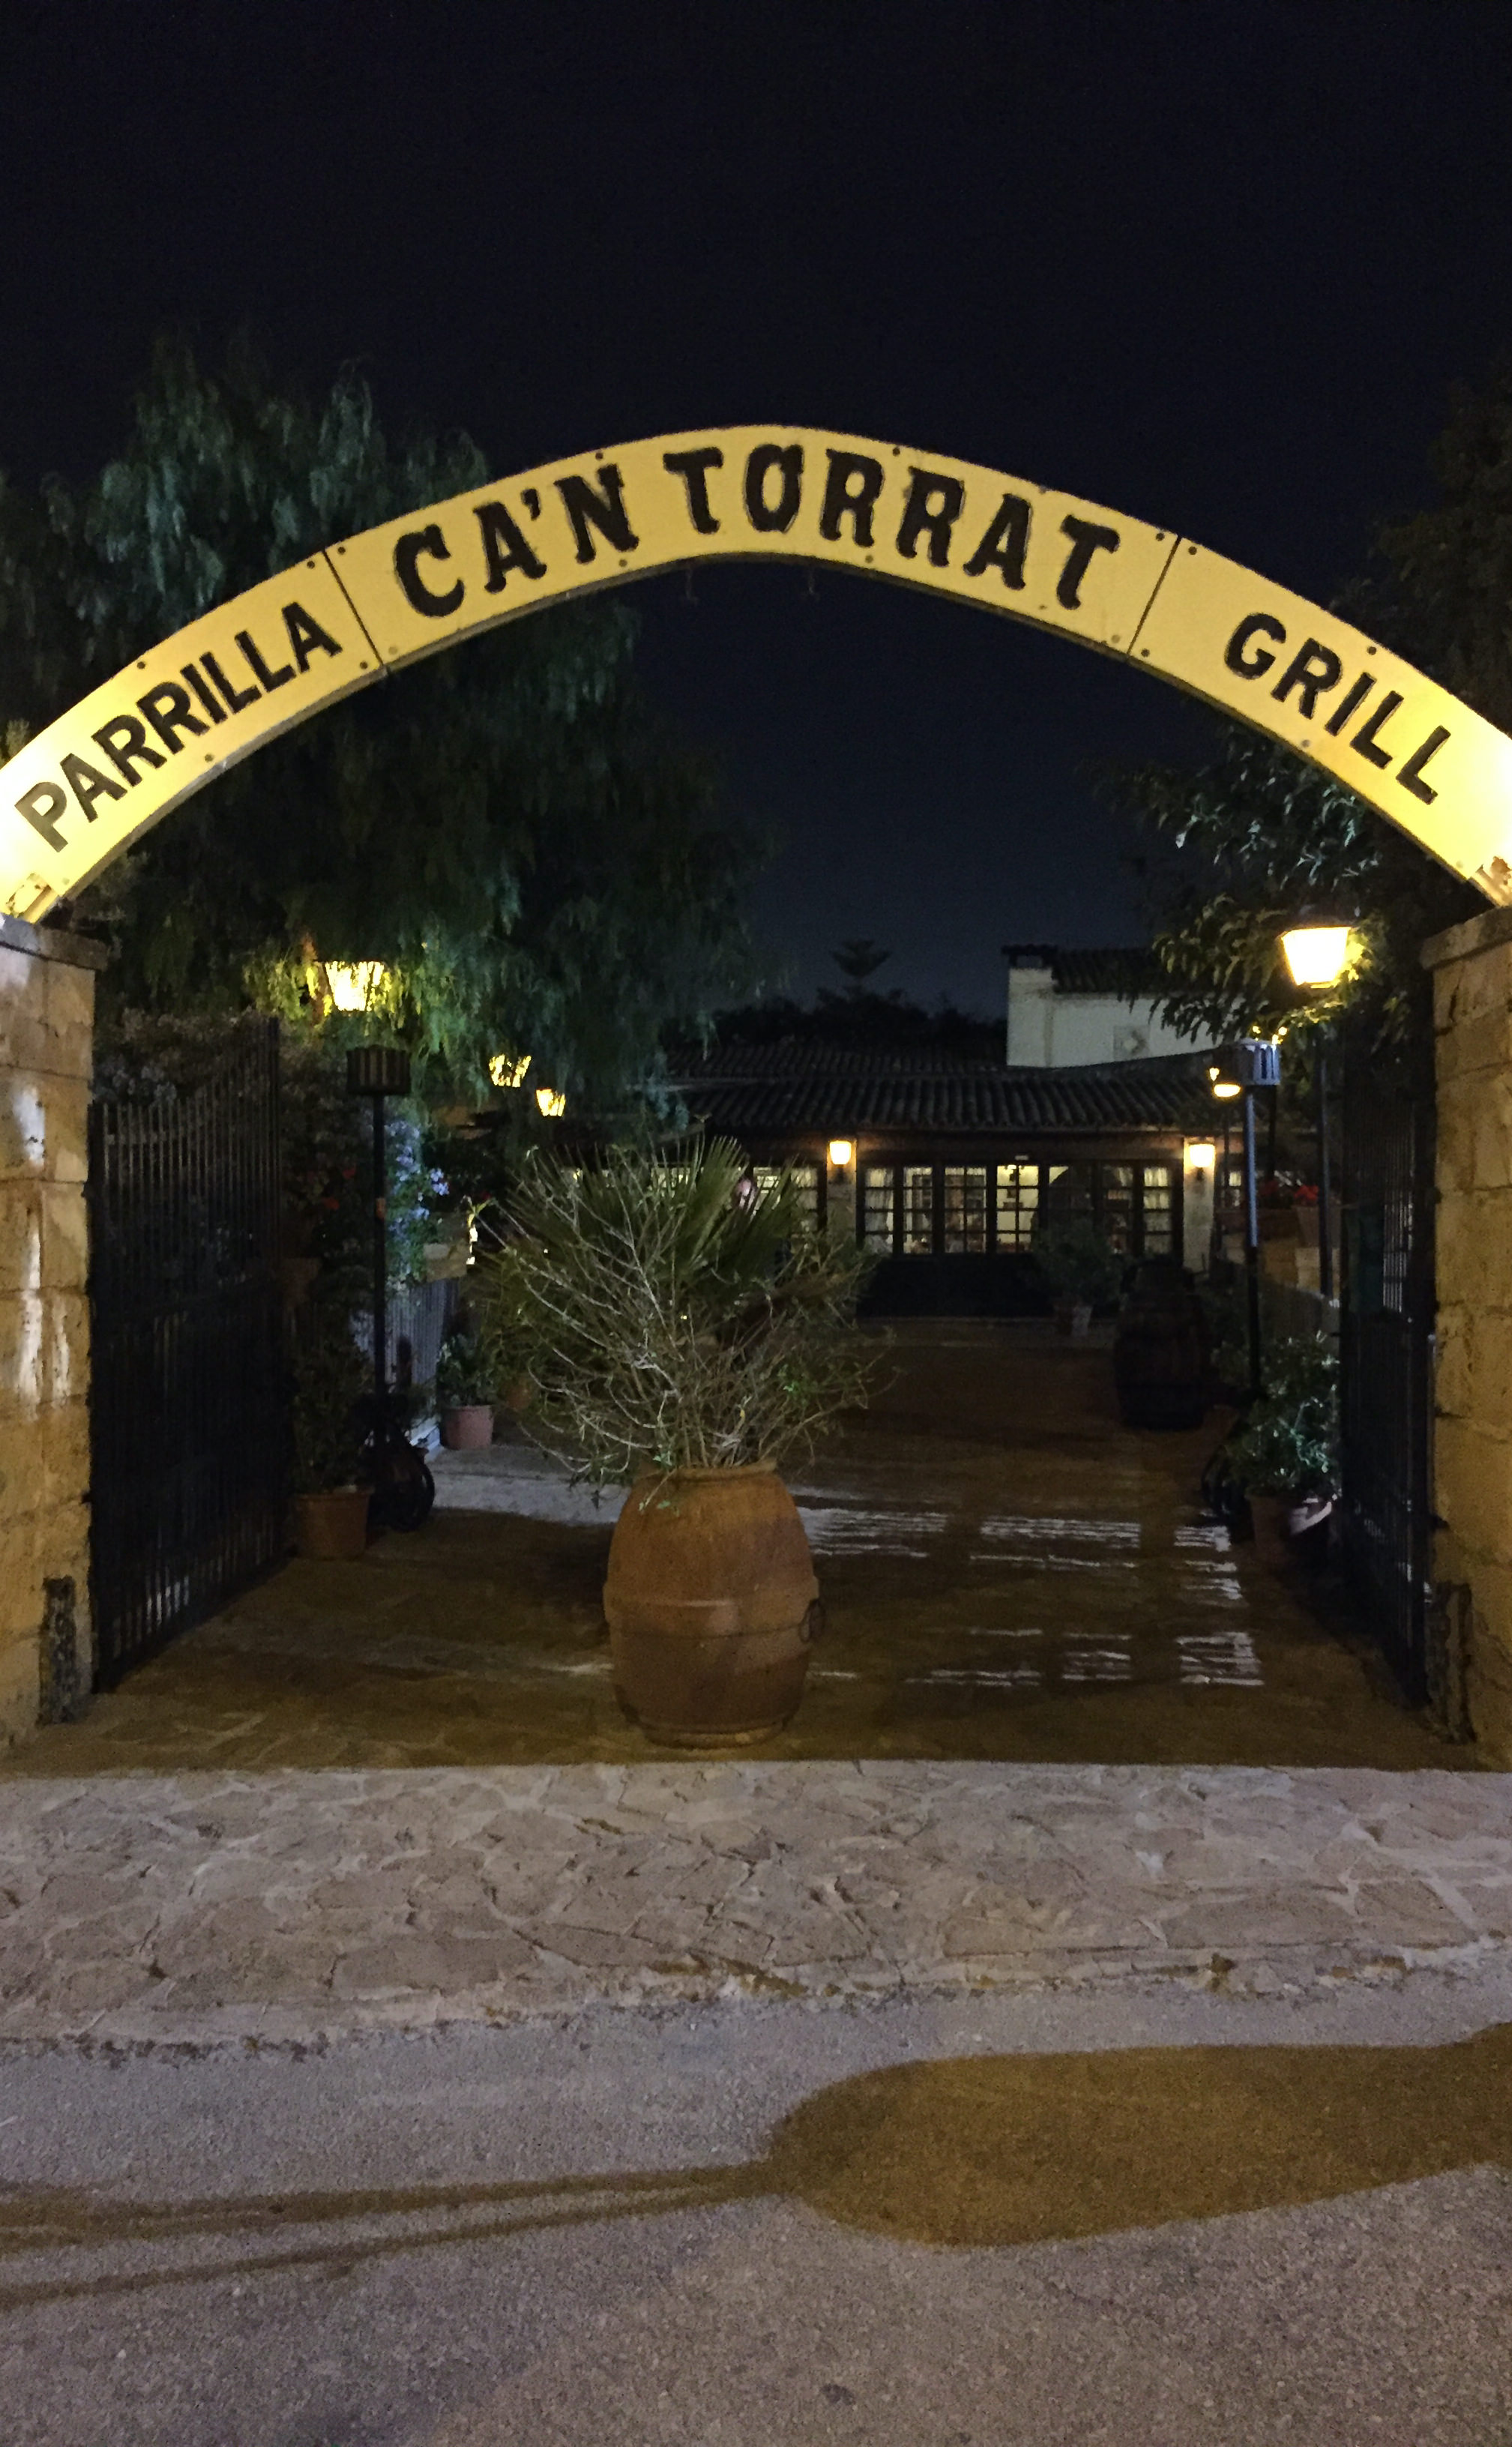 The Ca'n Torrat in Palma – great grilled meat for food lovers